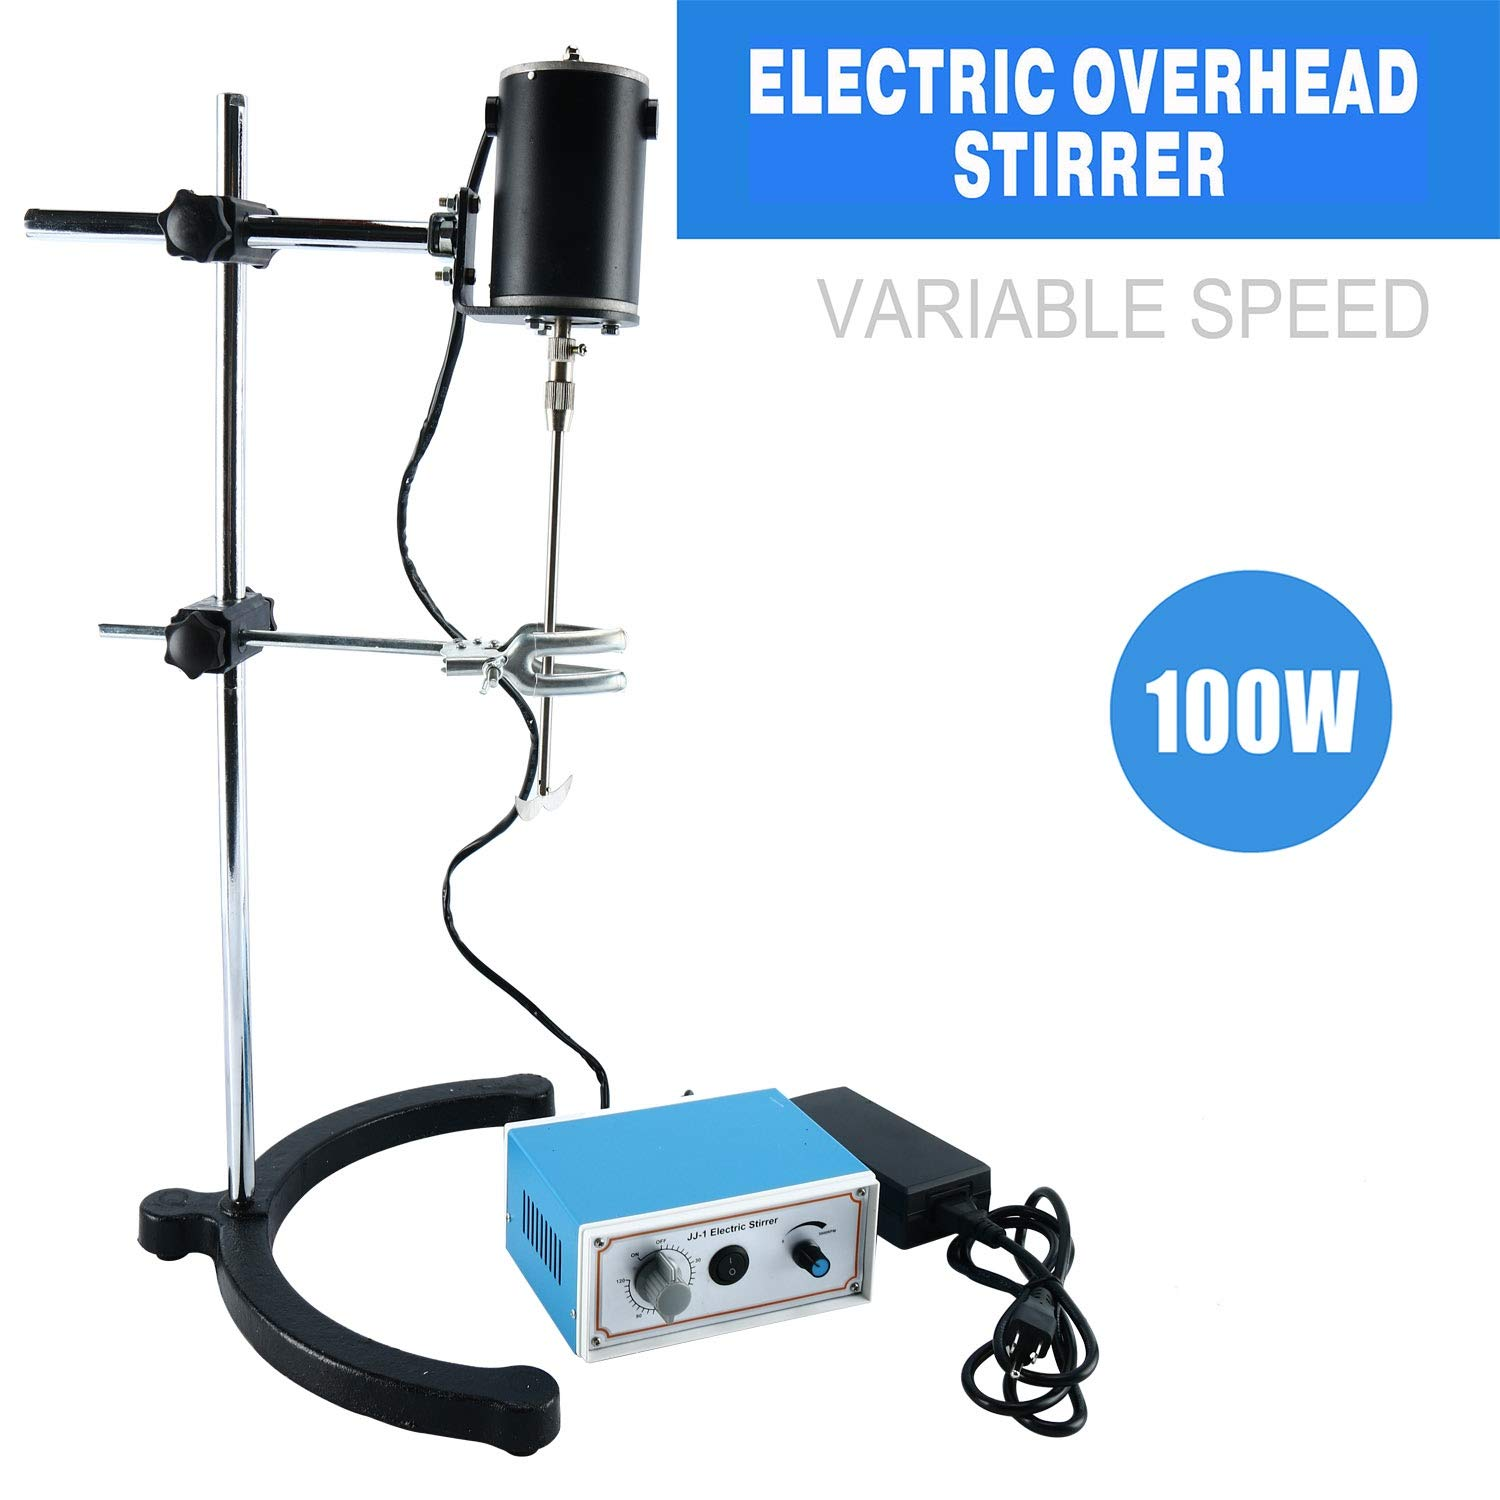 YaeCCC Electric Overhead Stirrer Mixer Blender Lab Mechanical Mixer 100W Variable Speed 0-120 Minute 0-3000 RPM for Lab Mechanical Mixer by YaeCCC